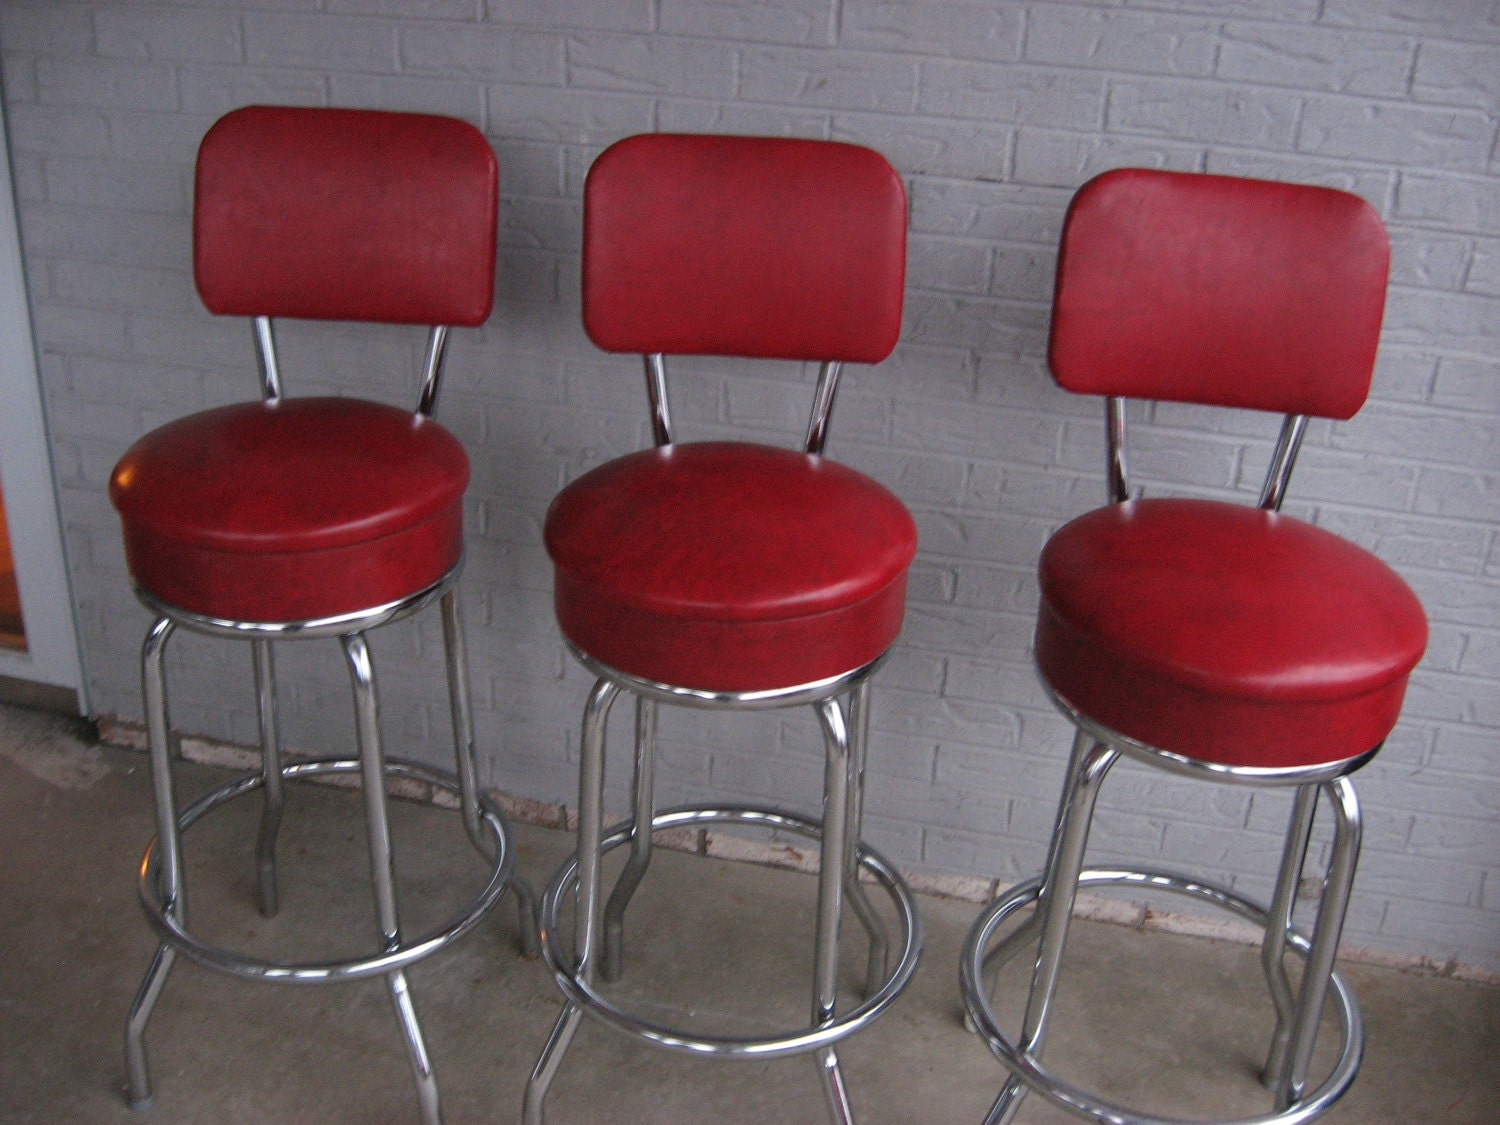 ... Retro Dining Room Set By Three 3 Vintage Retro 1950s 1960s Red Bar  Stools Excellent ...